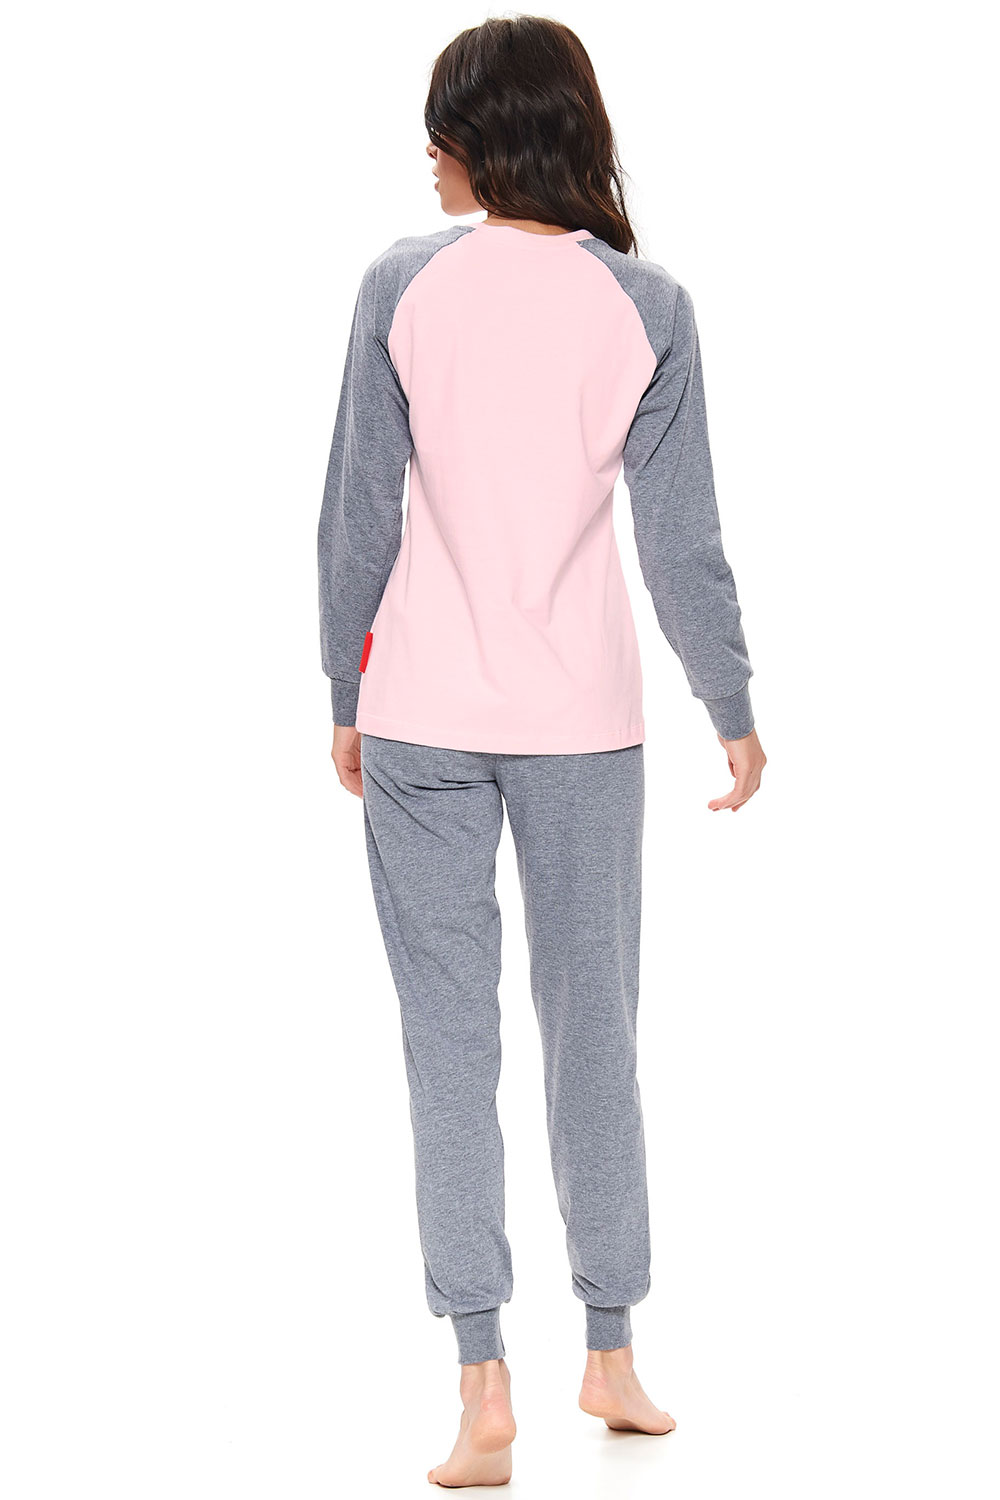 piżama Dn-nightwear PM.9715 - zoom